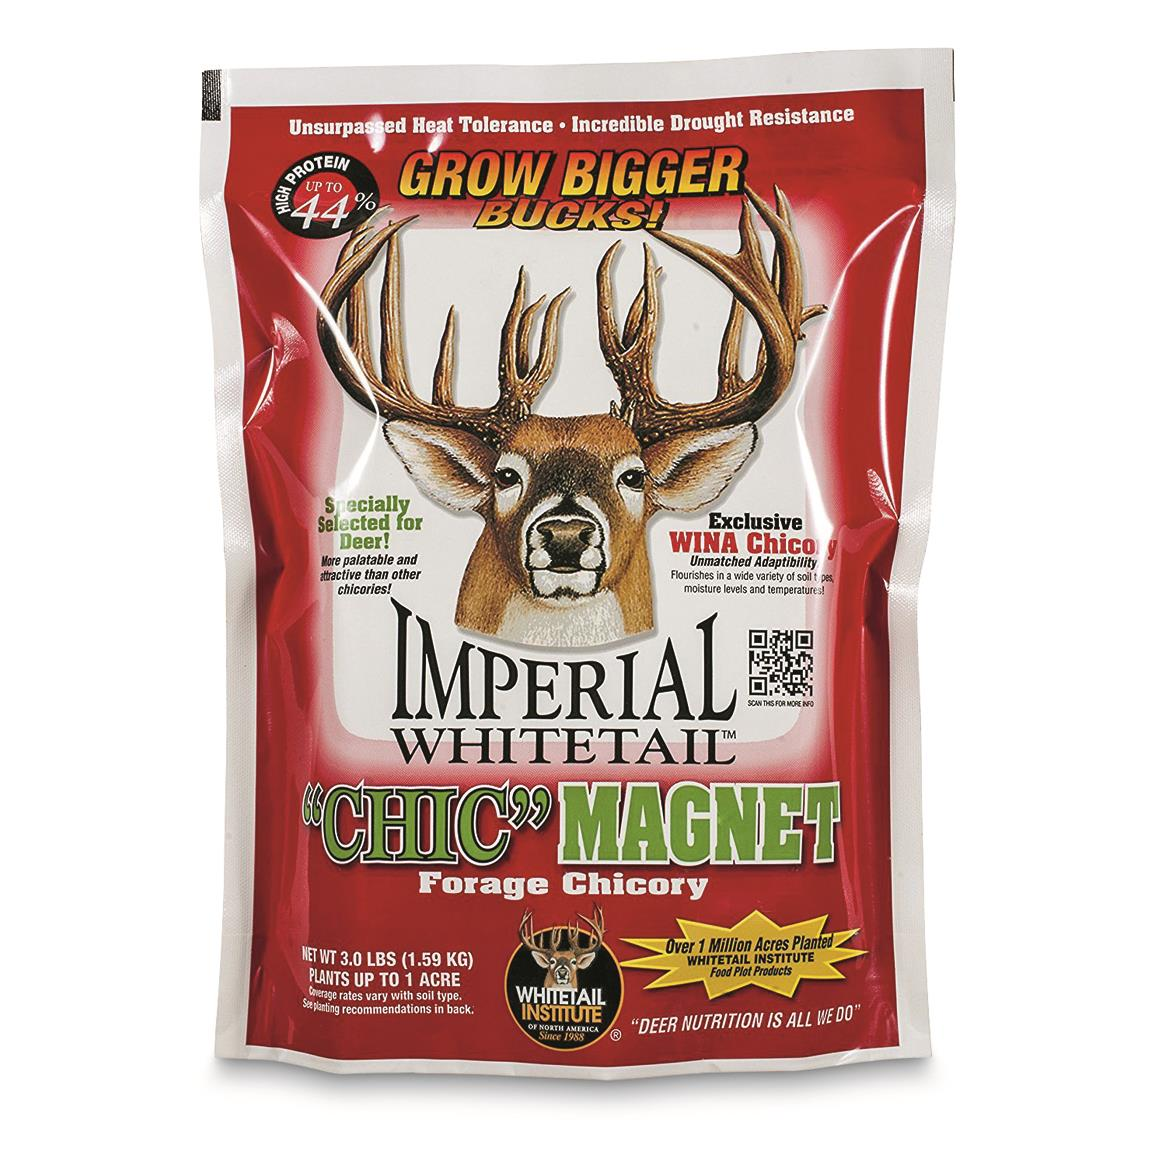 Whitetail Institute Chic Magnet Food Plot Seed, 3 lbs